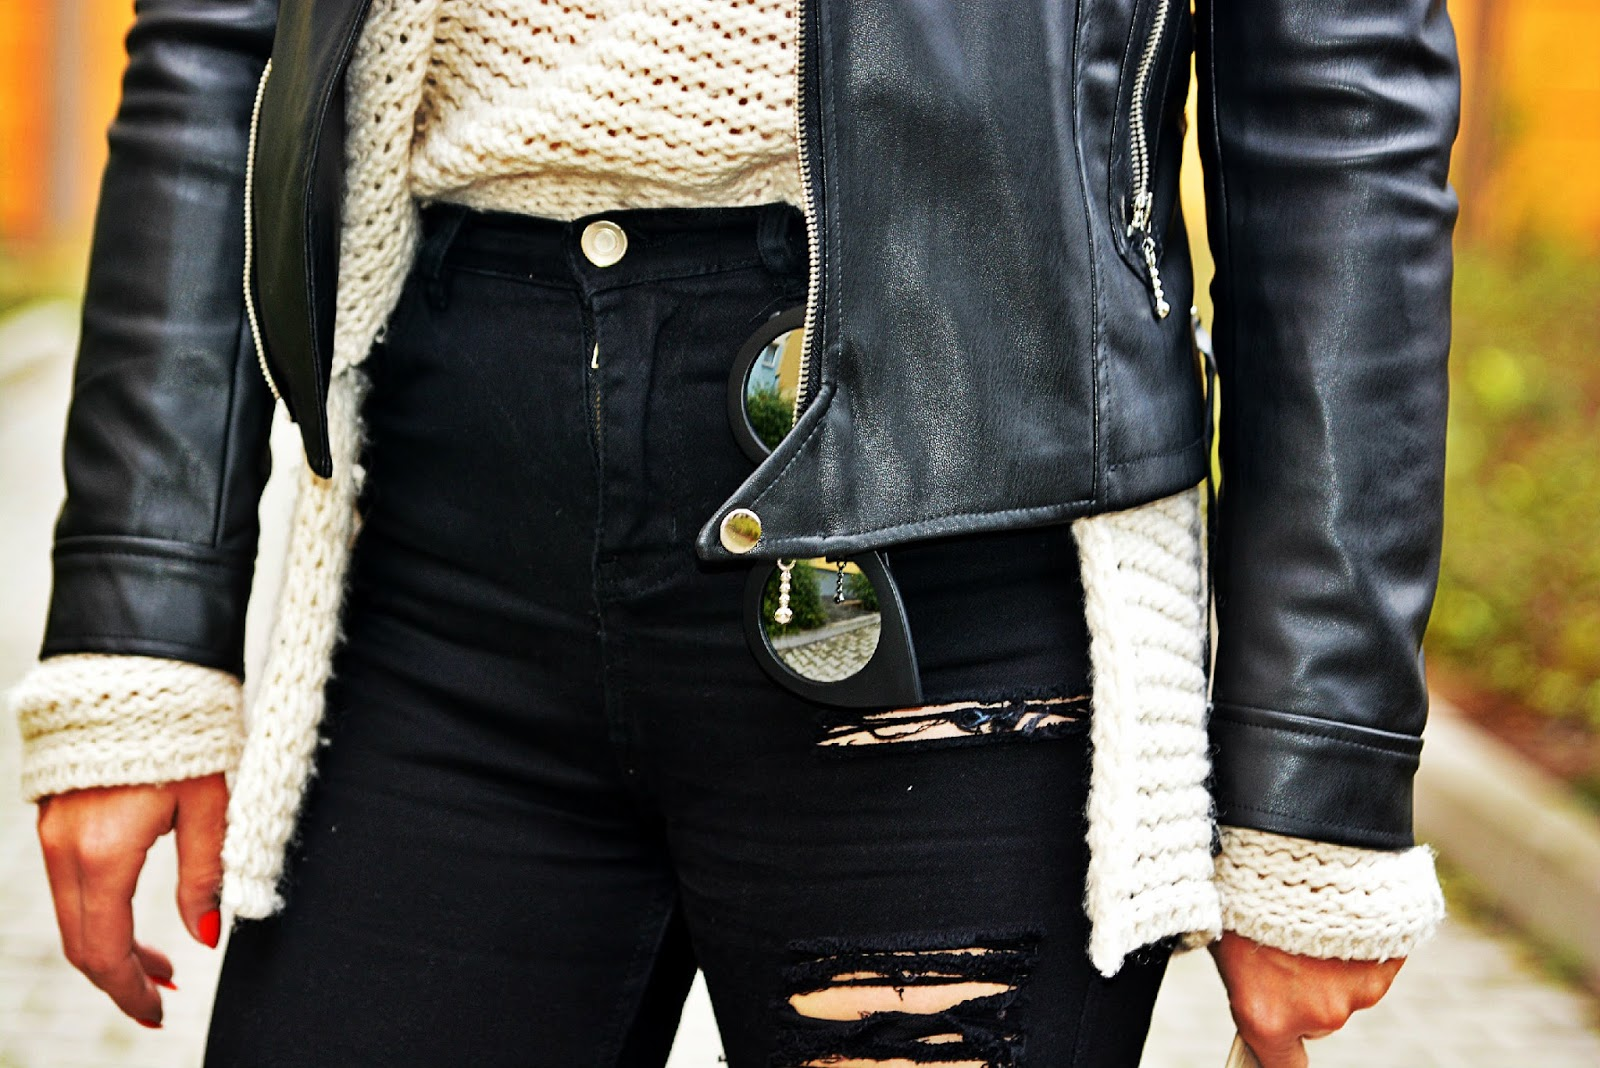 high_waist_pants_black_biker_jacket_beige_hat_7